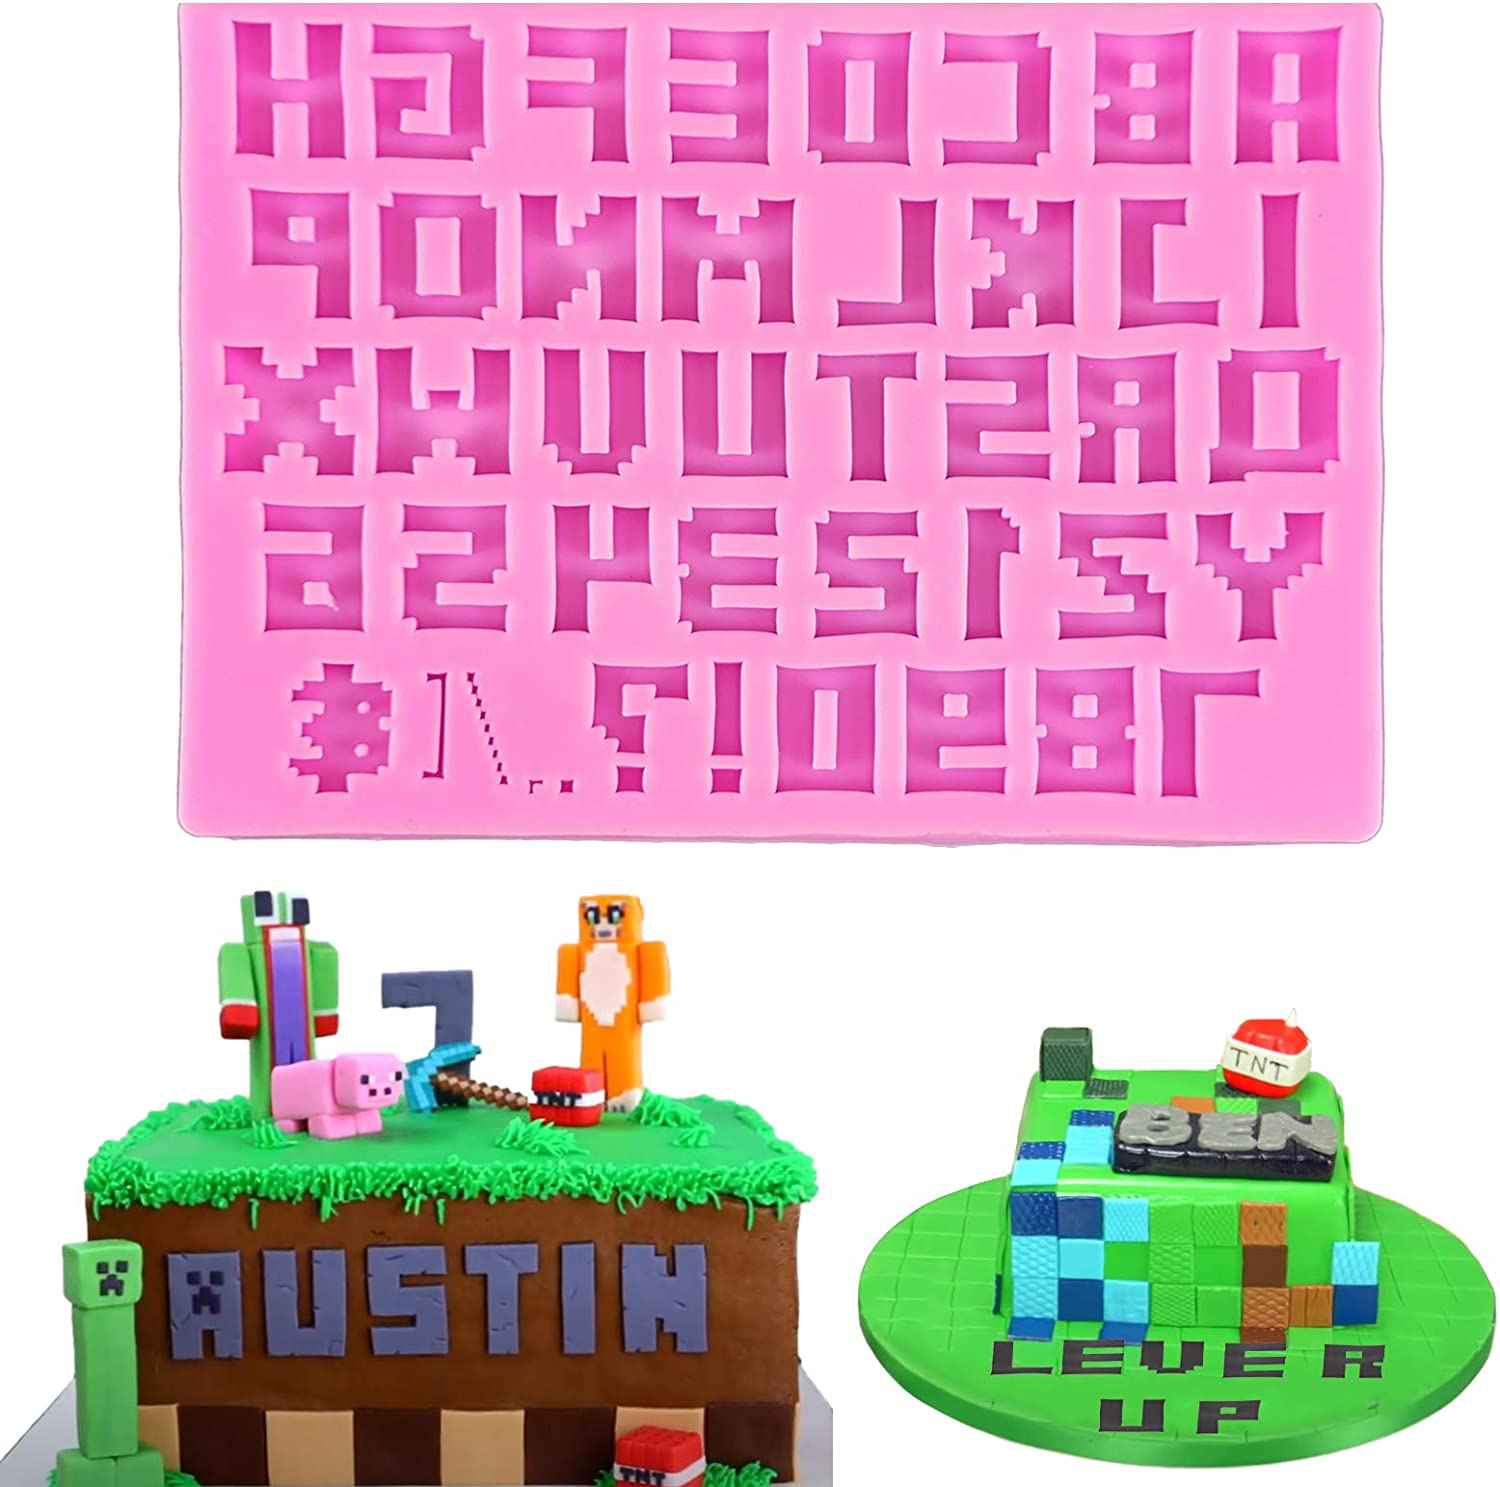 Mity rain Video Game Alphabet and Number Fondant Silicone Mold Capital Letter Punctuation Candy Chocolate Mold for DIY Gumpaste SugarCraft, Cupcake Topper, Game Theme Party Cake Decoration